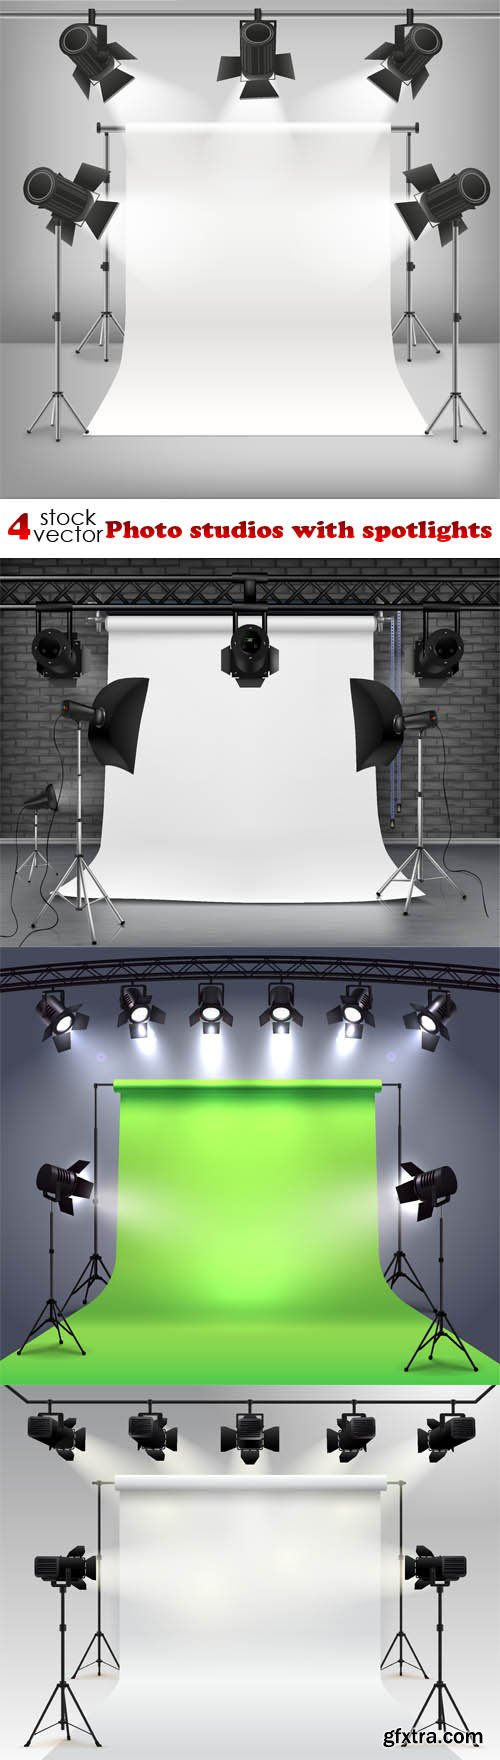 Vectors - Photo studios with spotlights